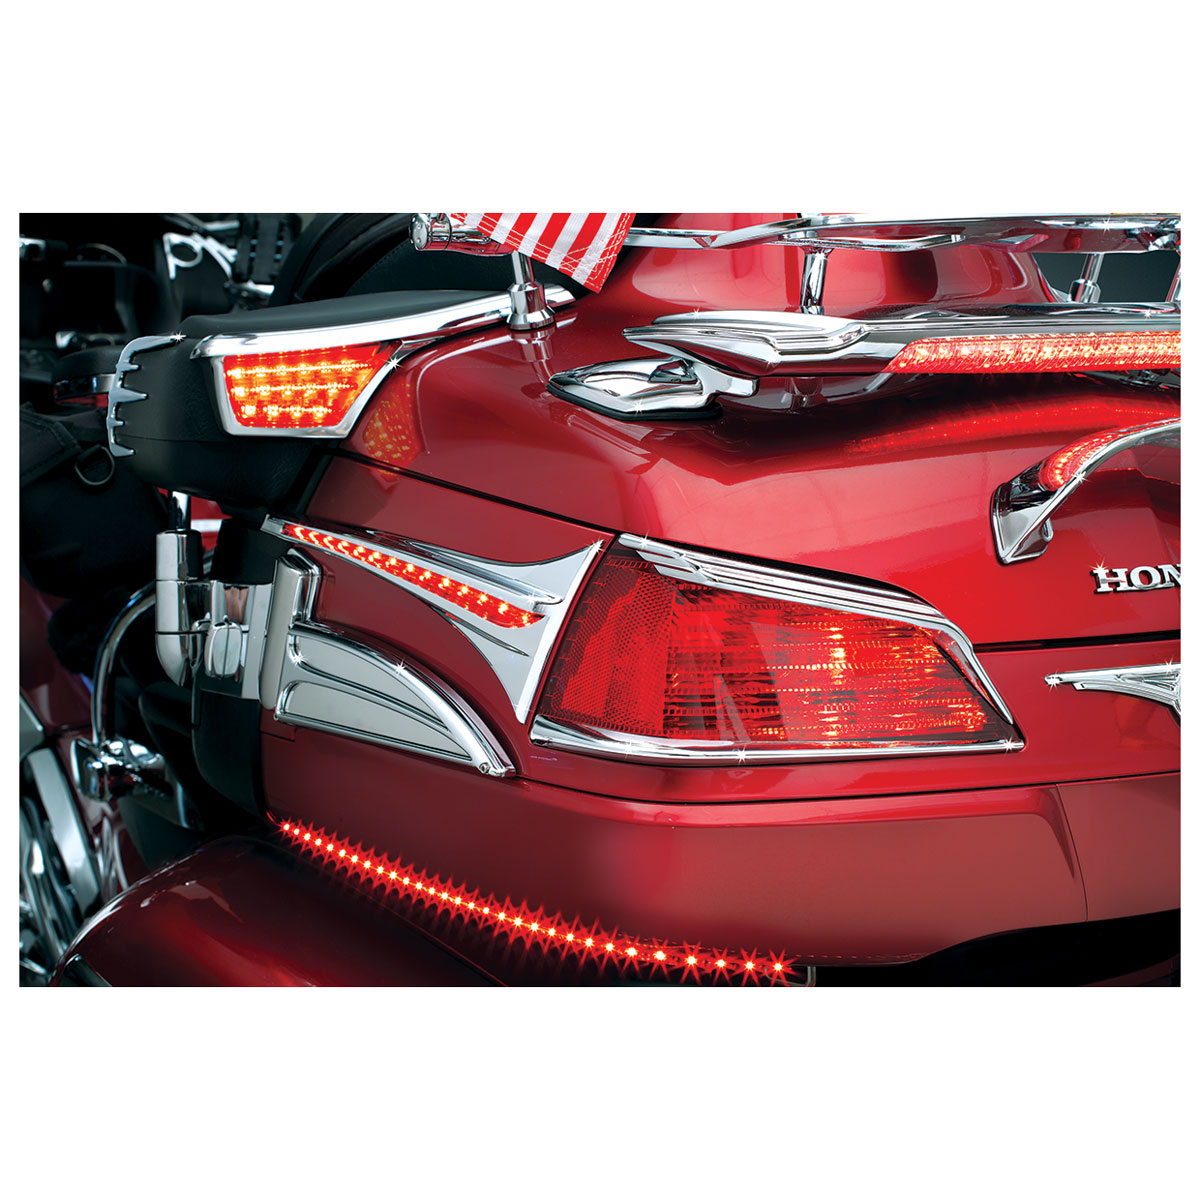 Kuryakyn Trunk Accent Swoops with LED Lights for GL1800 Gold Wing